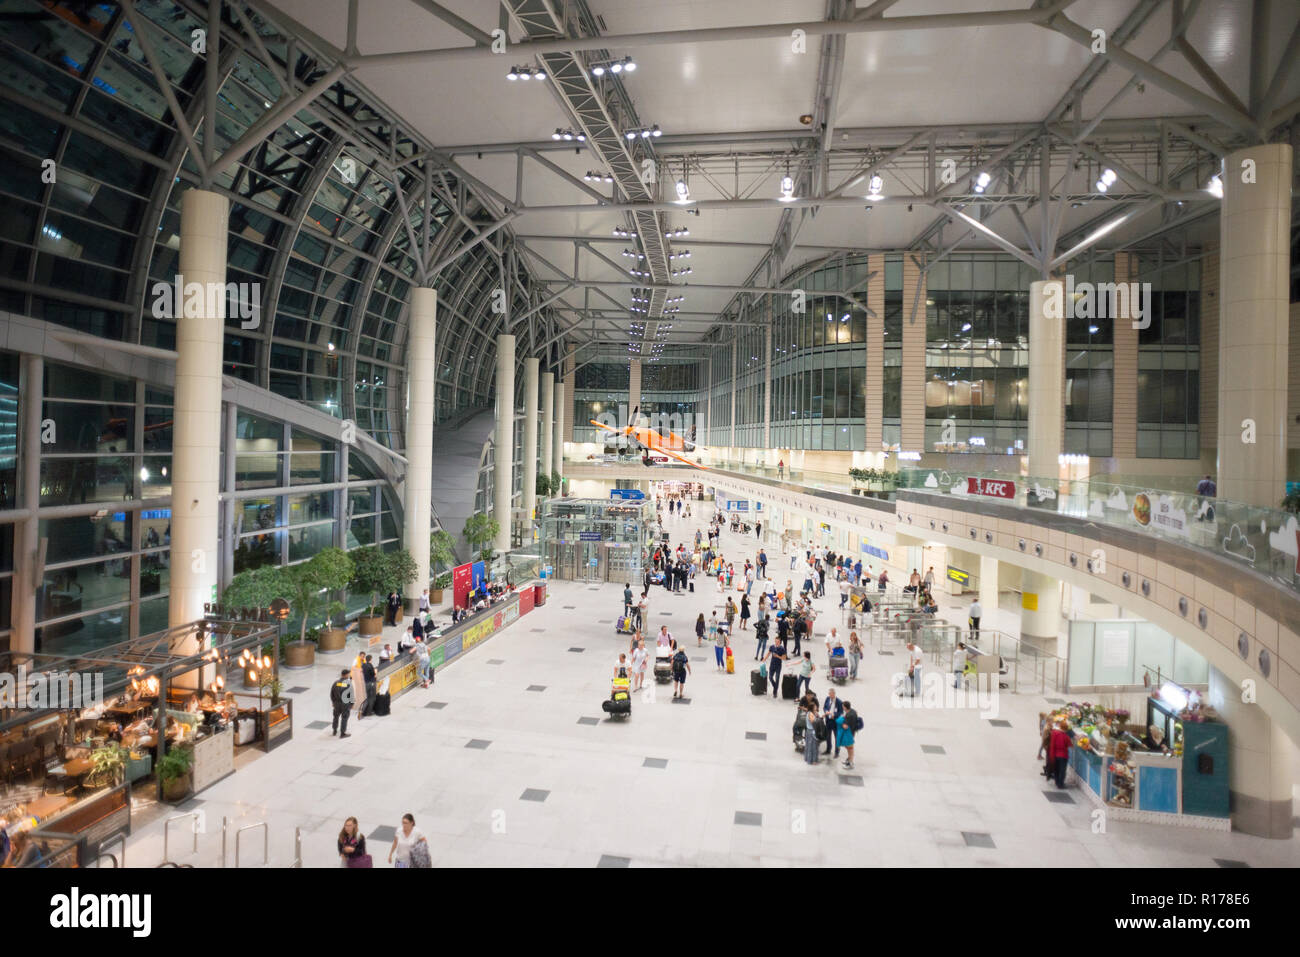 Moscow, Domodedovo, Russia - July 8, 2018: Hall of Domodedovo International Airport in Moscow with Passengers Inside. Night Time. Orange Airplane - Stock Image